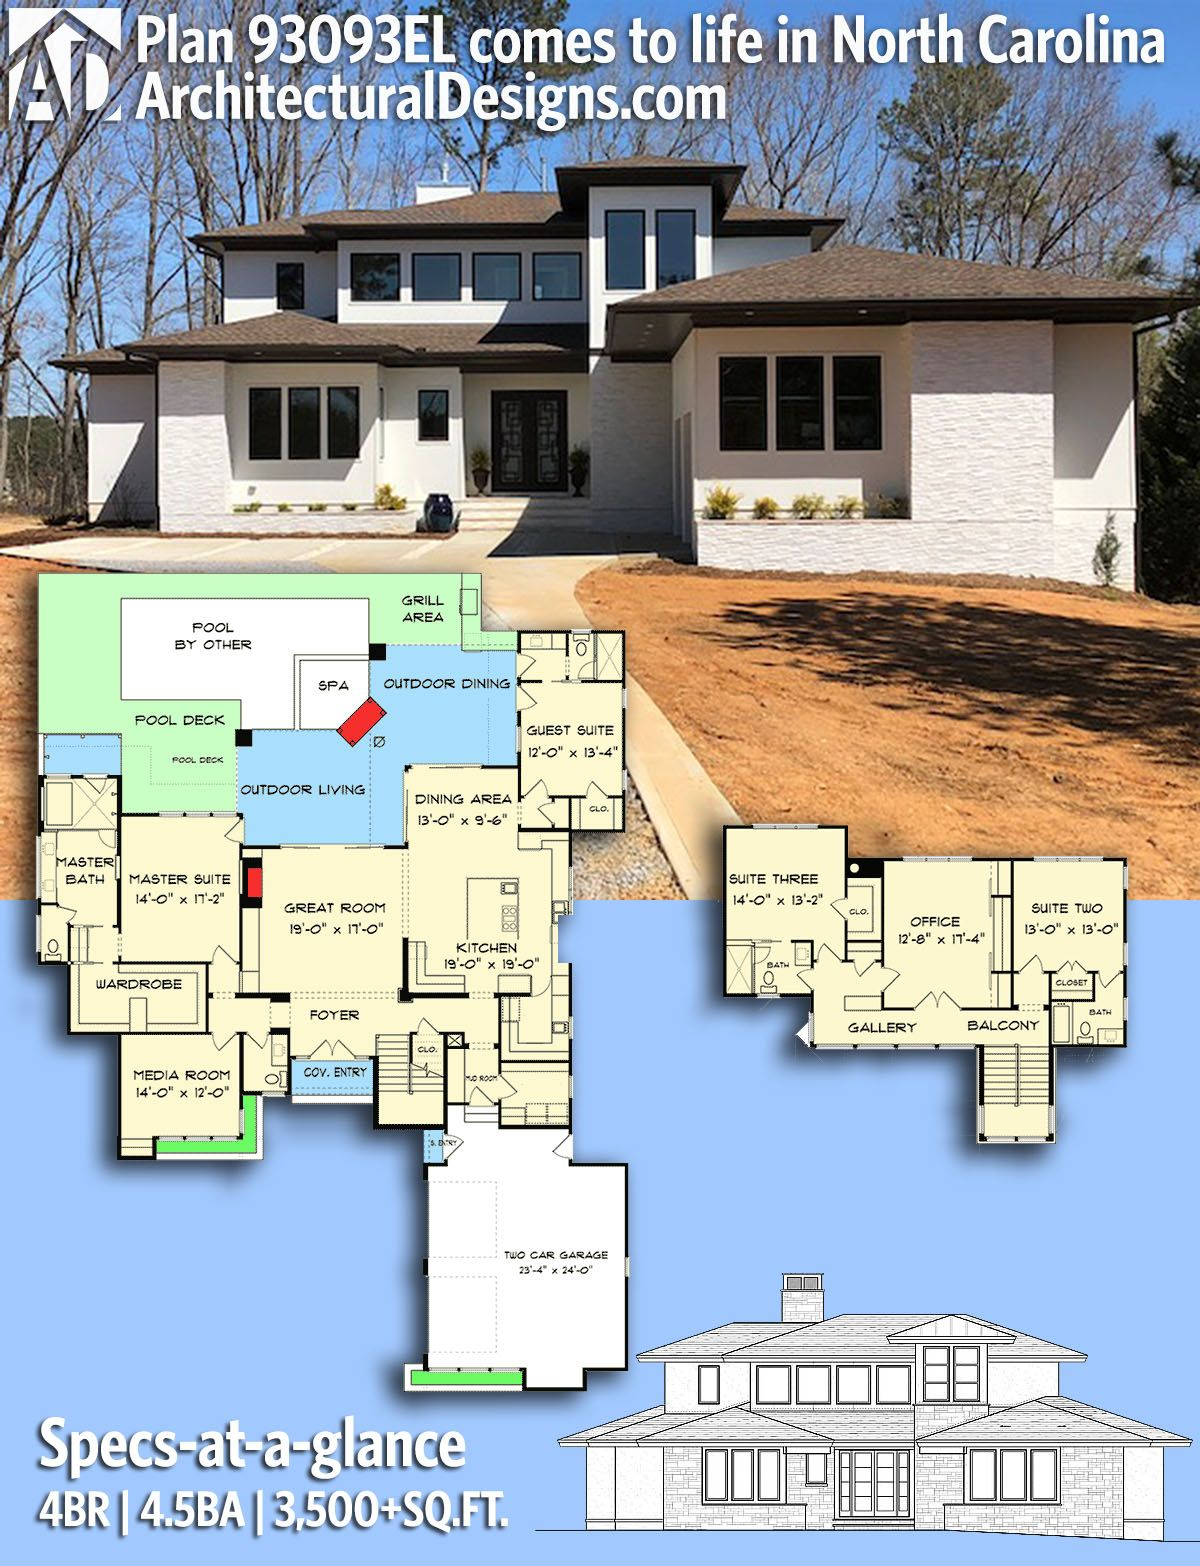 architectural designs house plan 93093el comes to life in north carolina 4br 45 ba 3500 sqft ready when you are where do you want to build - Architectural Designs Com